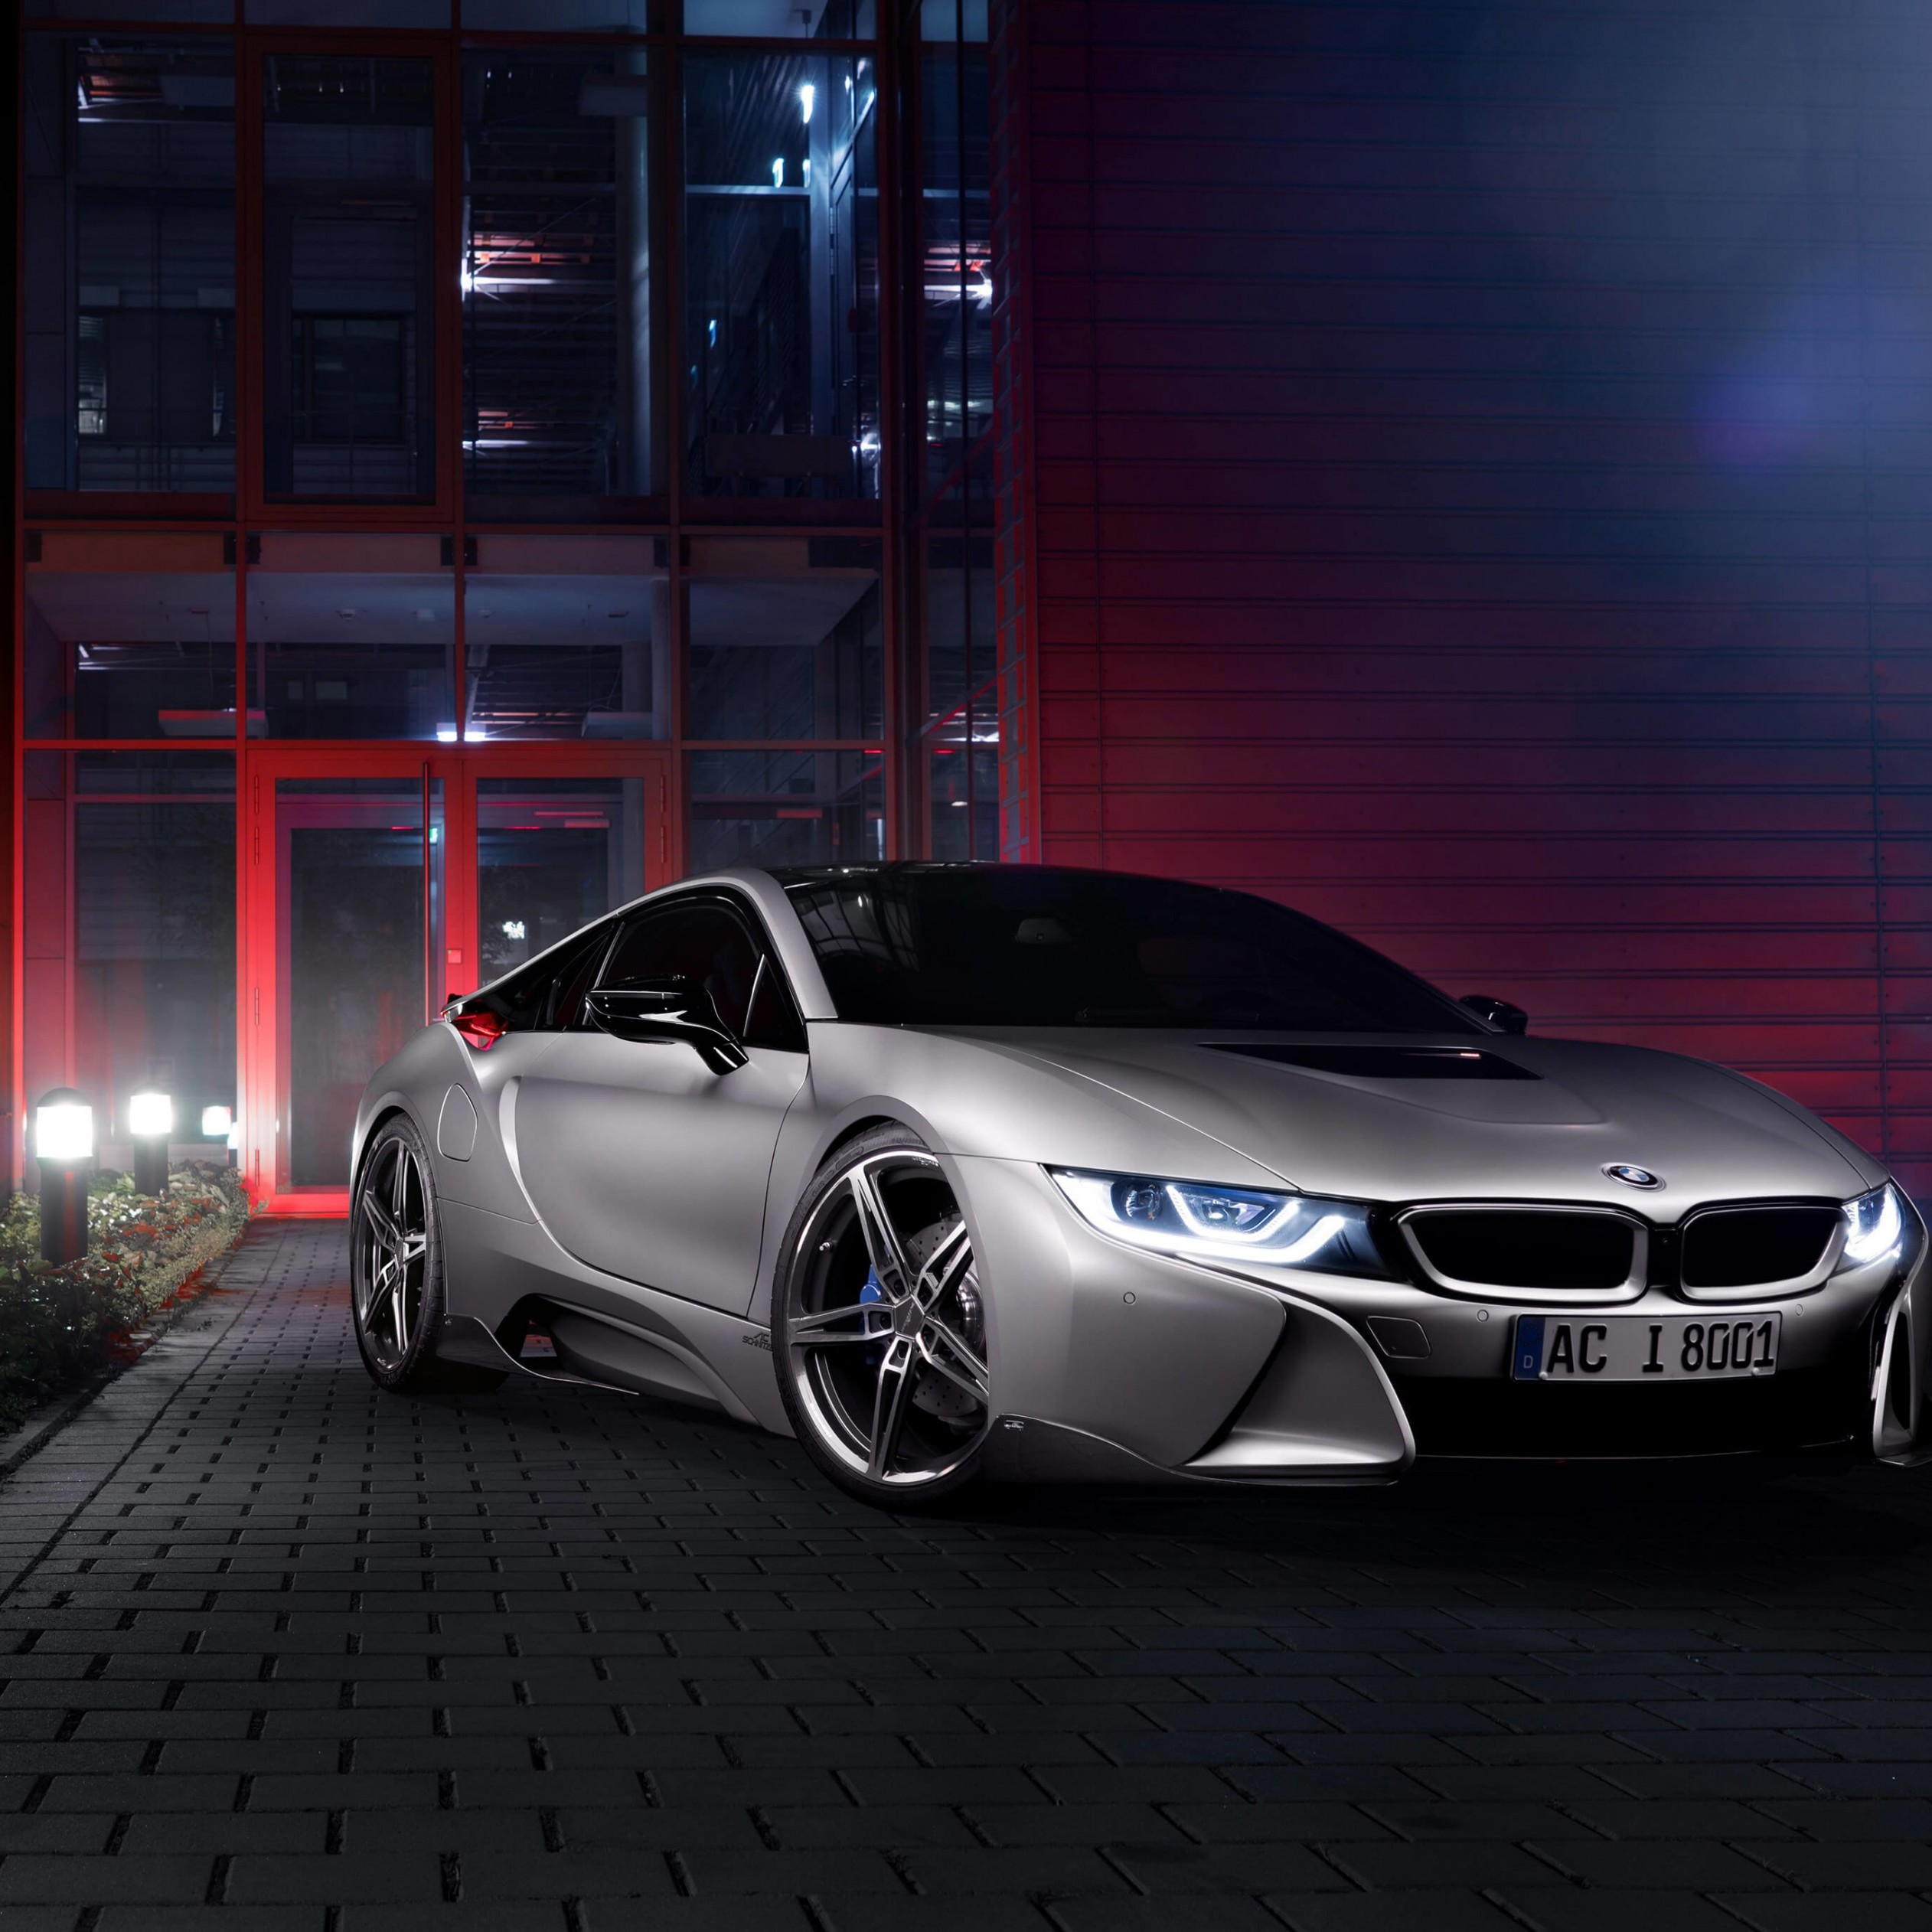 BMW i8 designed by AC Schnitzer Wallpaper for Apple iPad 3